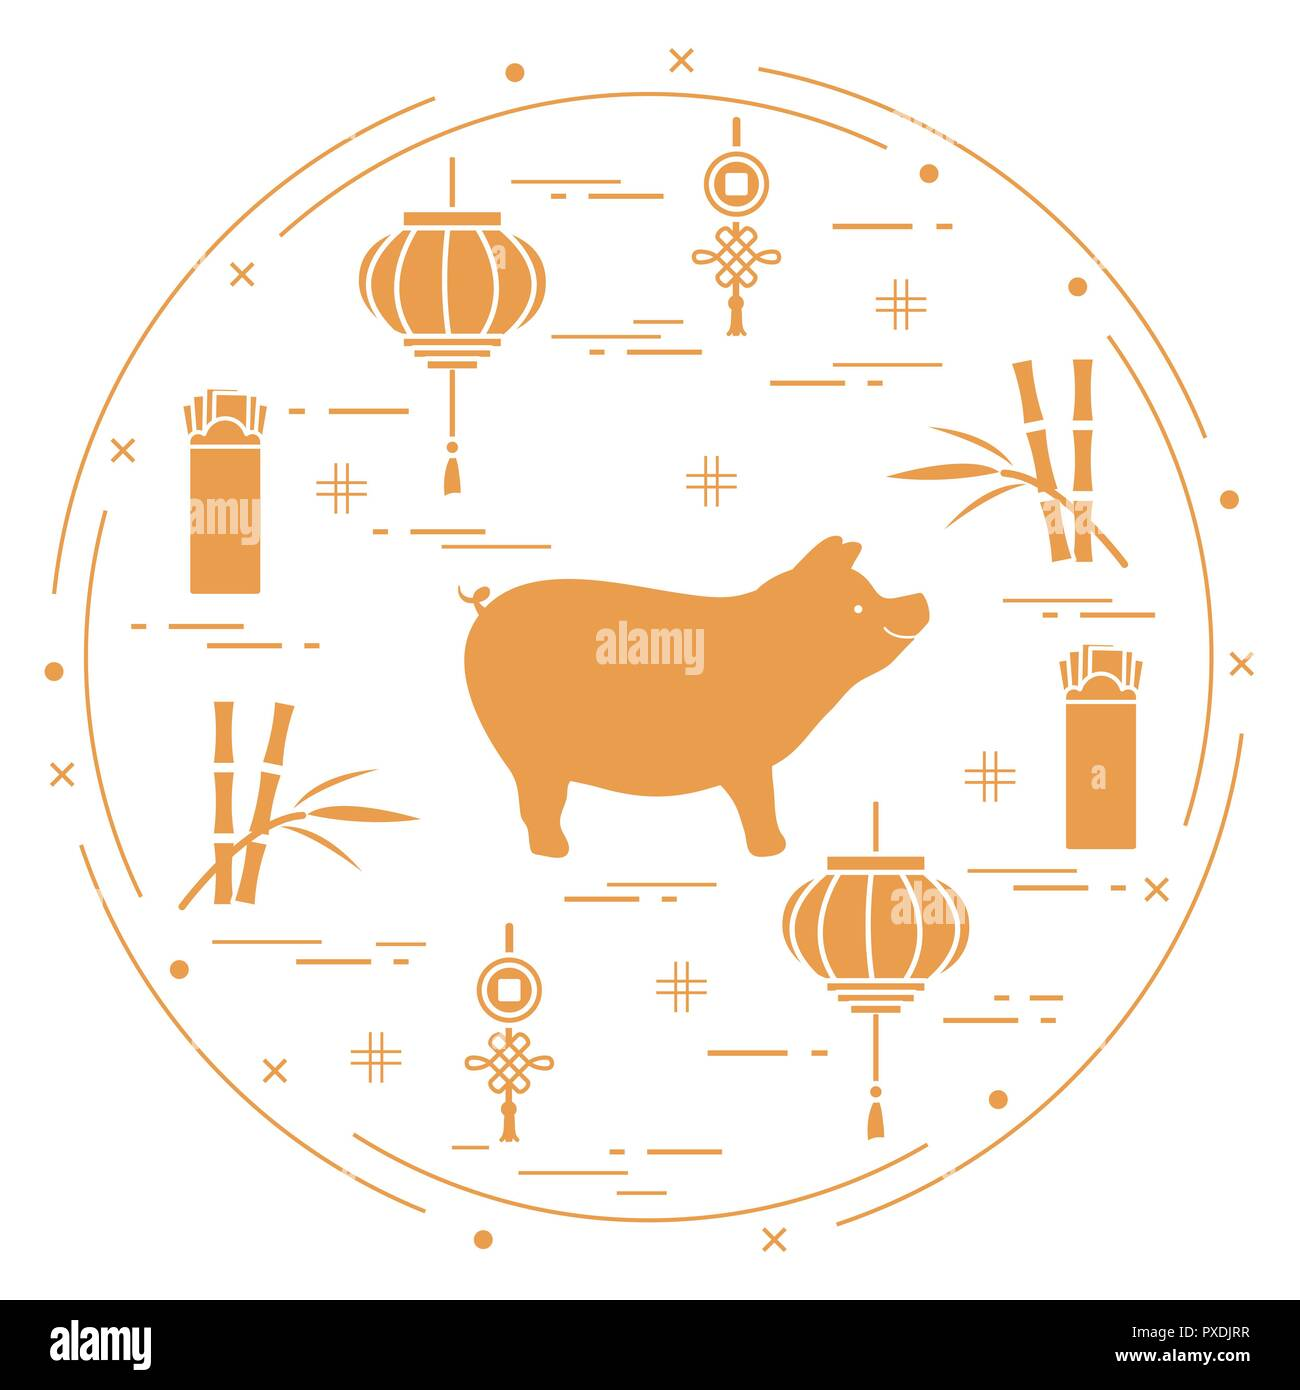 happy new year 2019 card chinese new year symbols pig lantern chinese red envelopes of money bamboo coin for luck festive traditions of differe